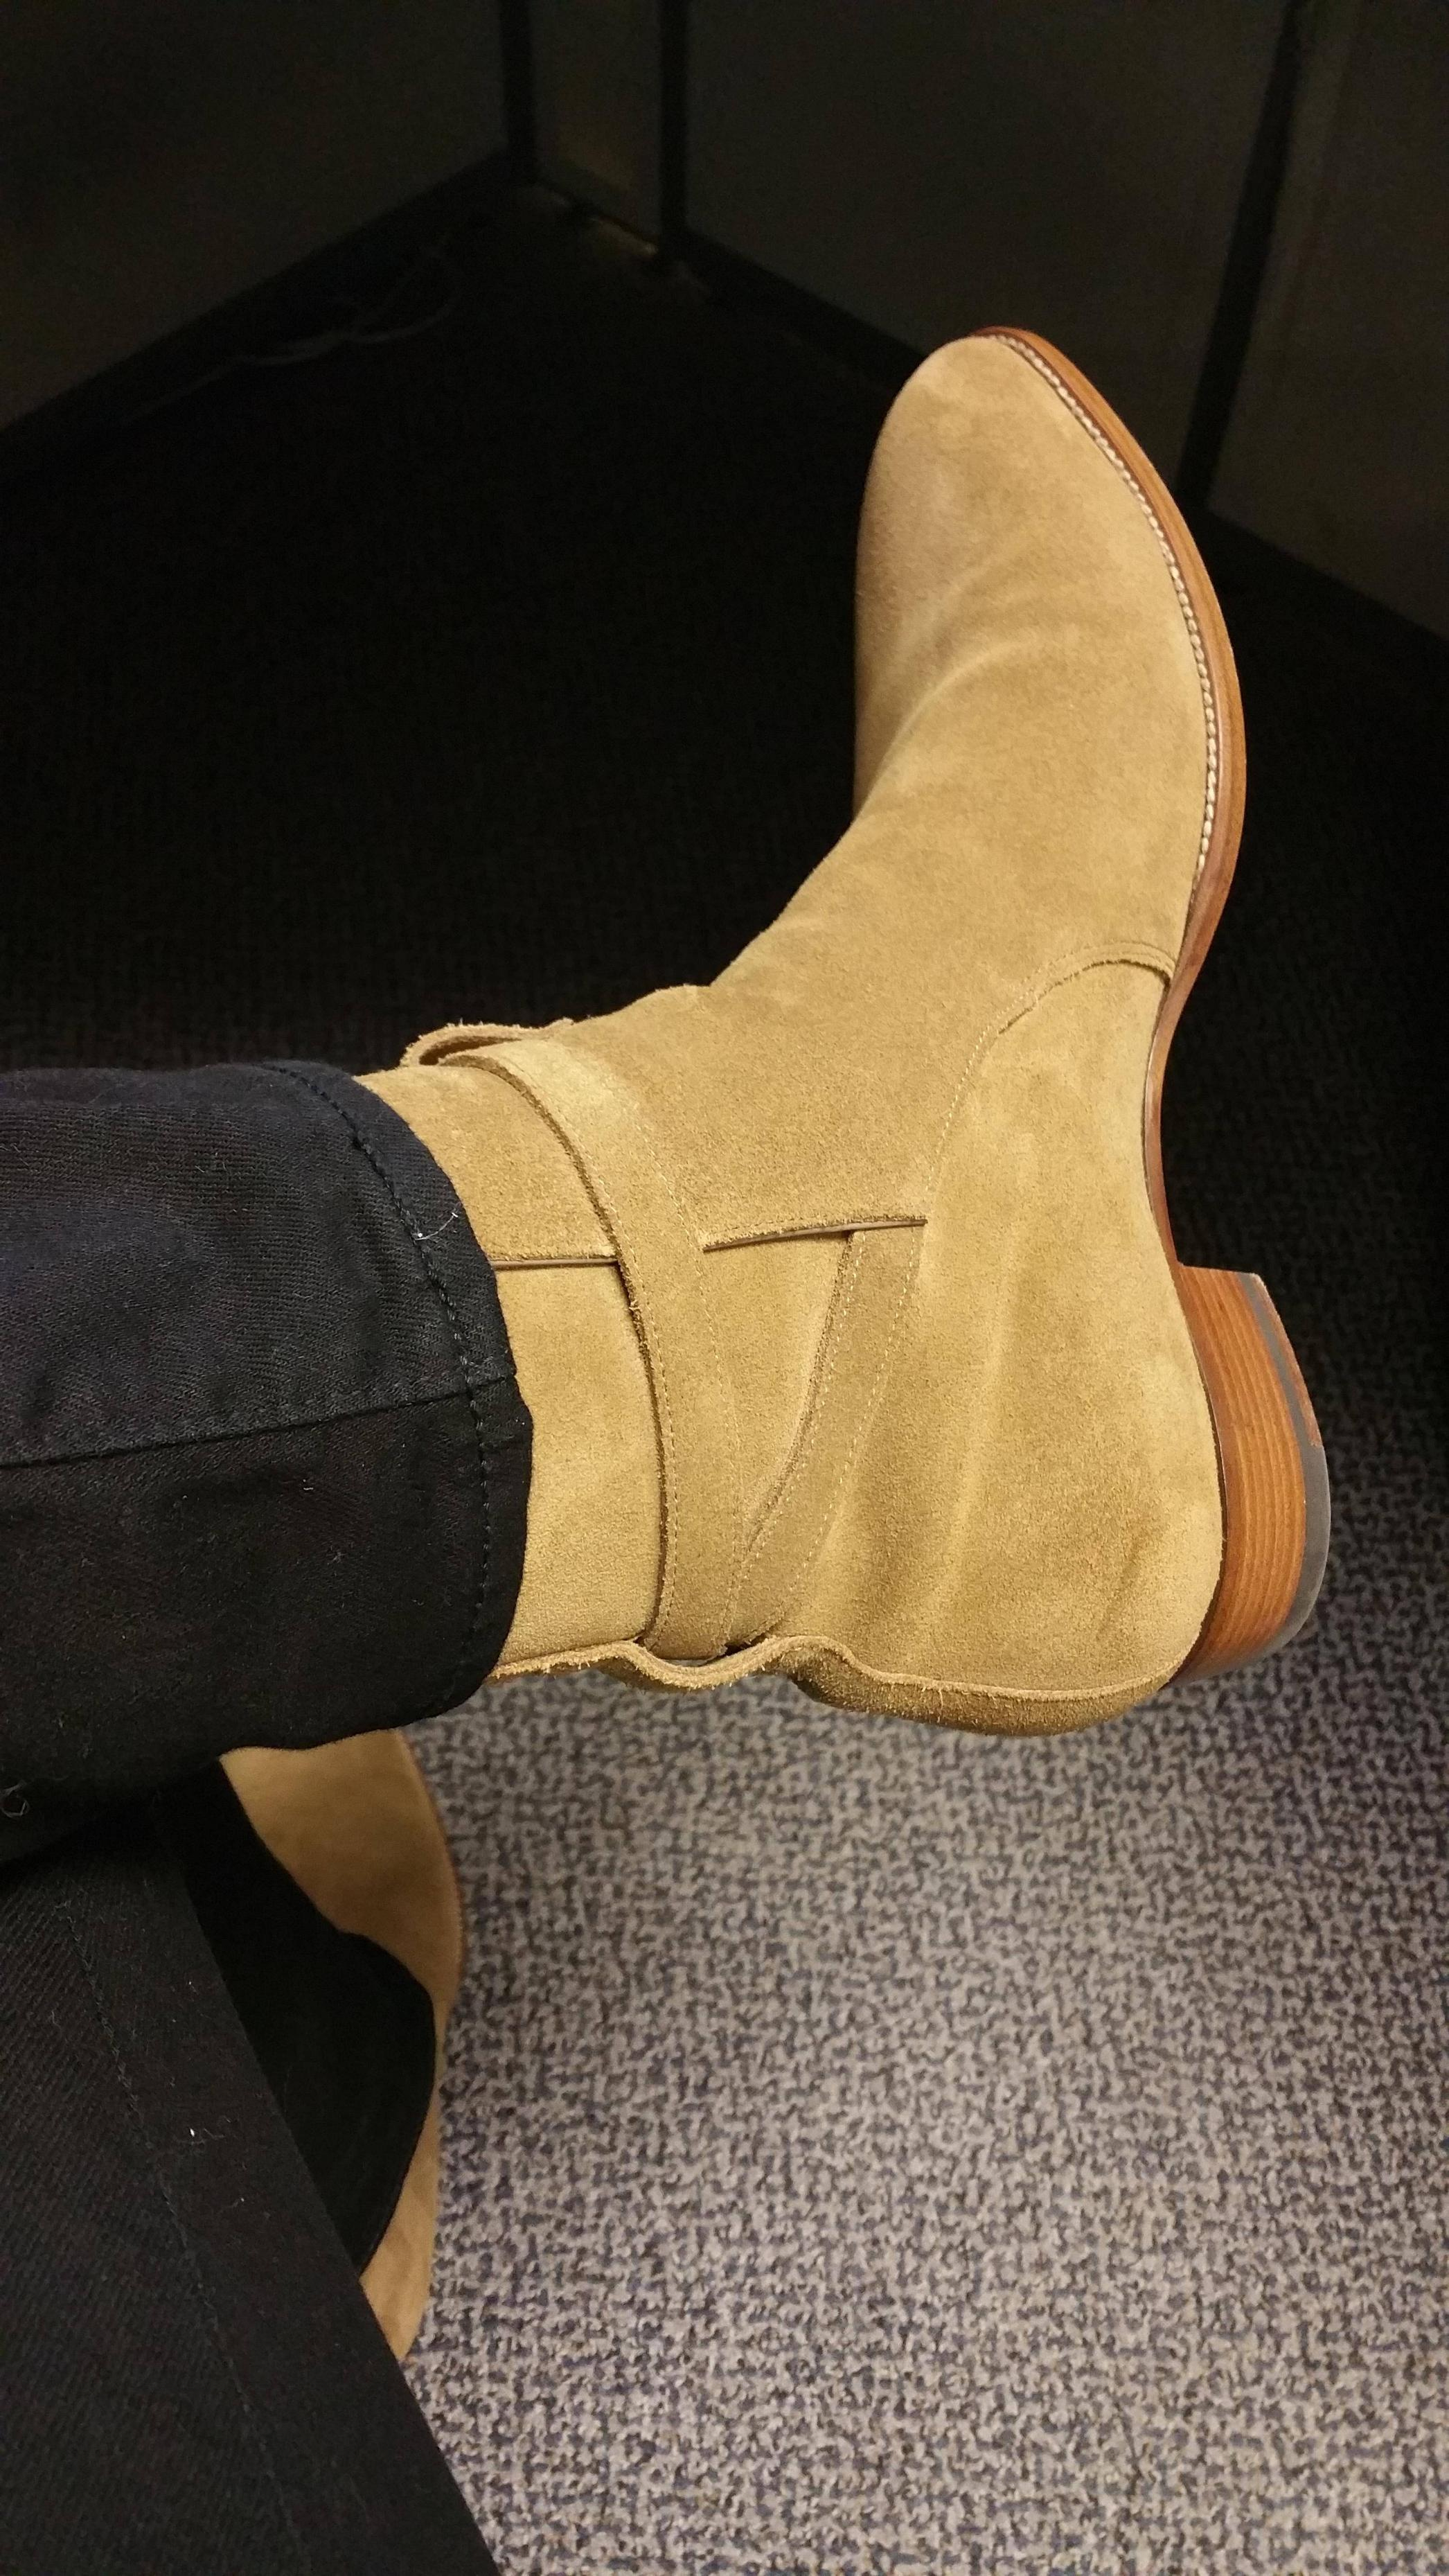 Camel Toes Who Knows Fashion